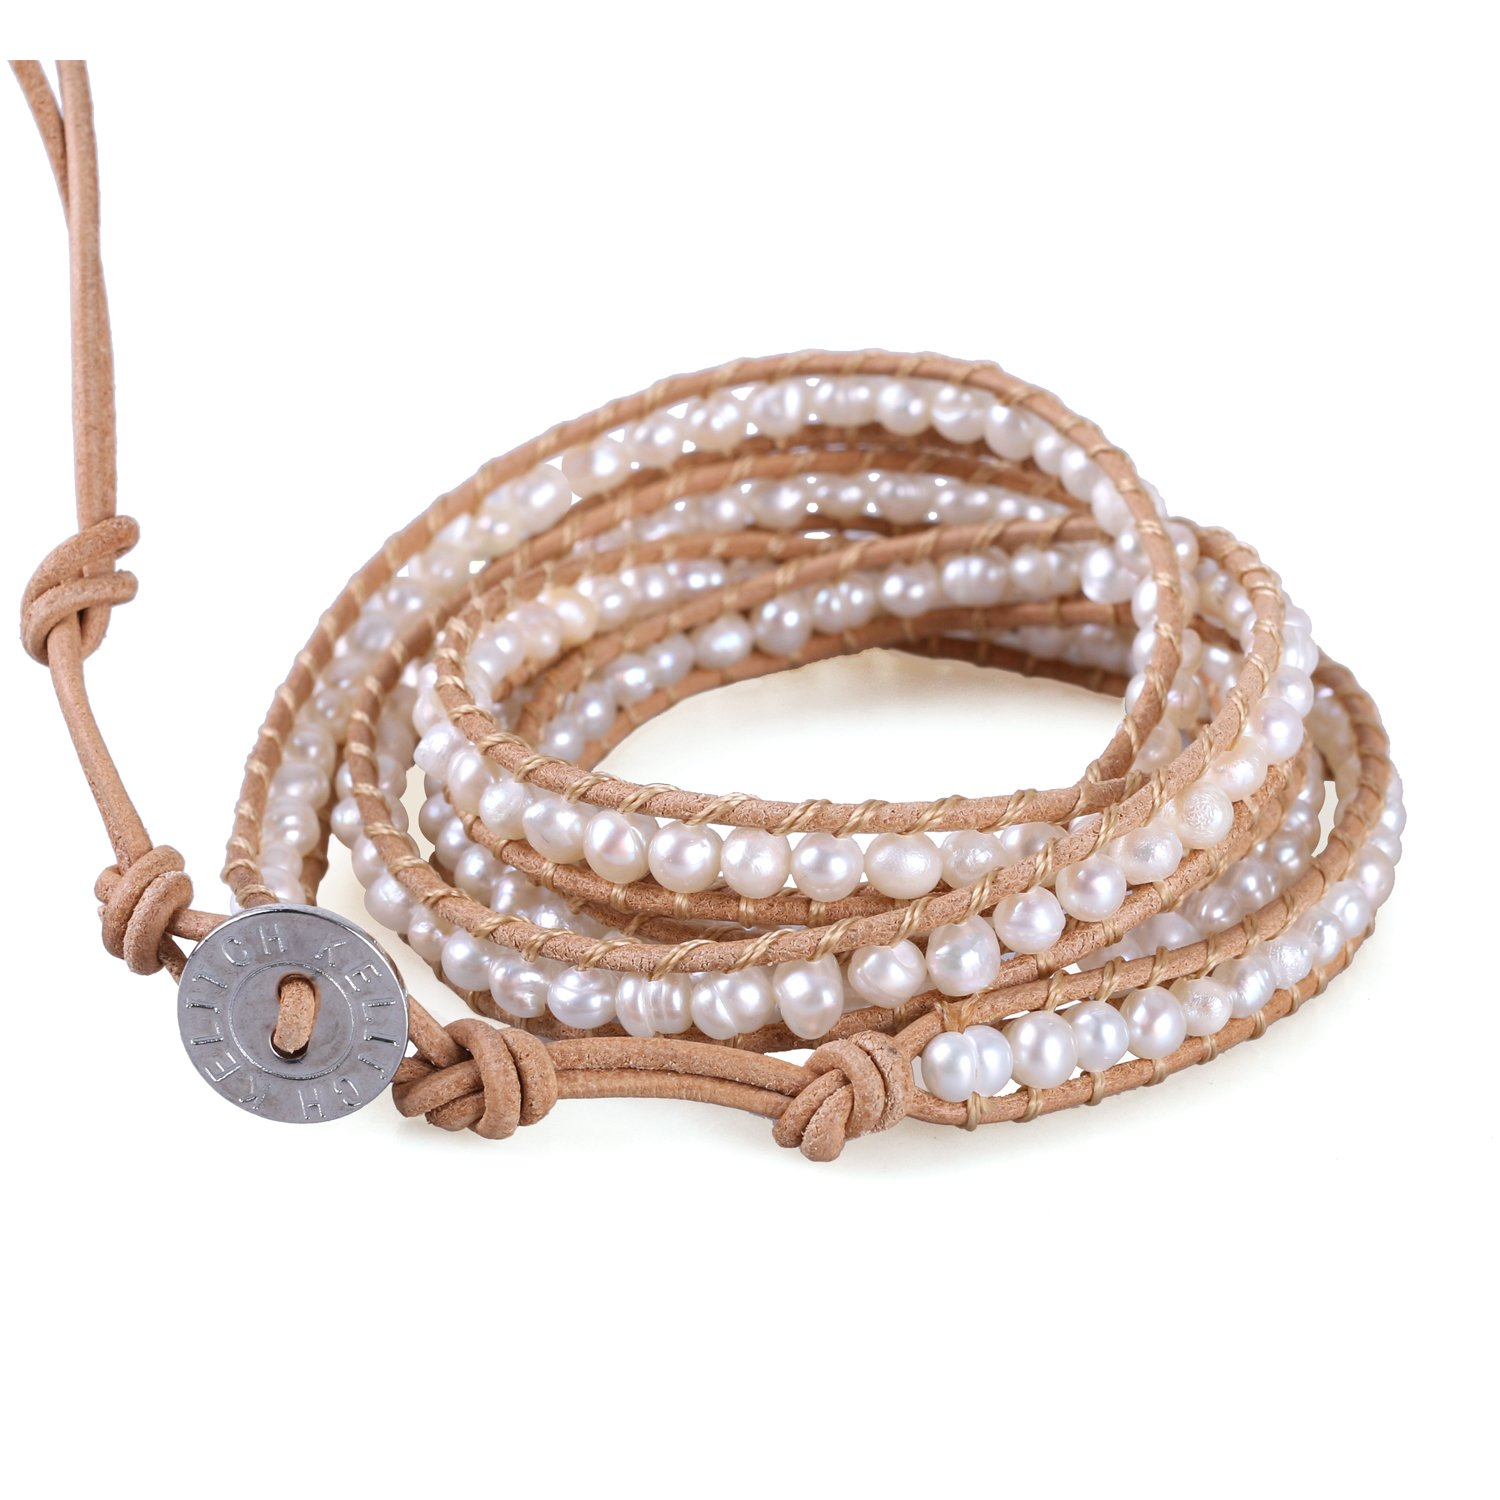 KELITCH Unique Natural Pearl Beaded 5 Wrap Bracelet Top Women Beach Strand Bracelet Gifts